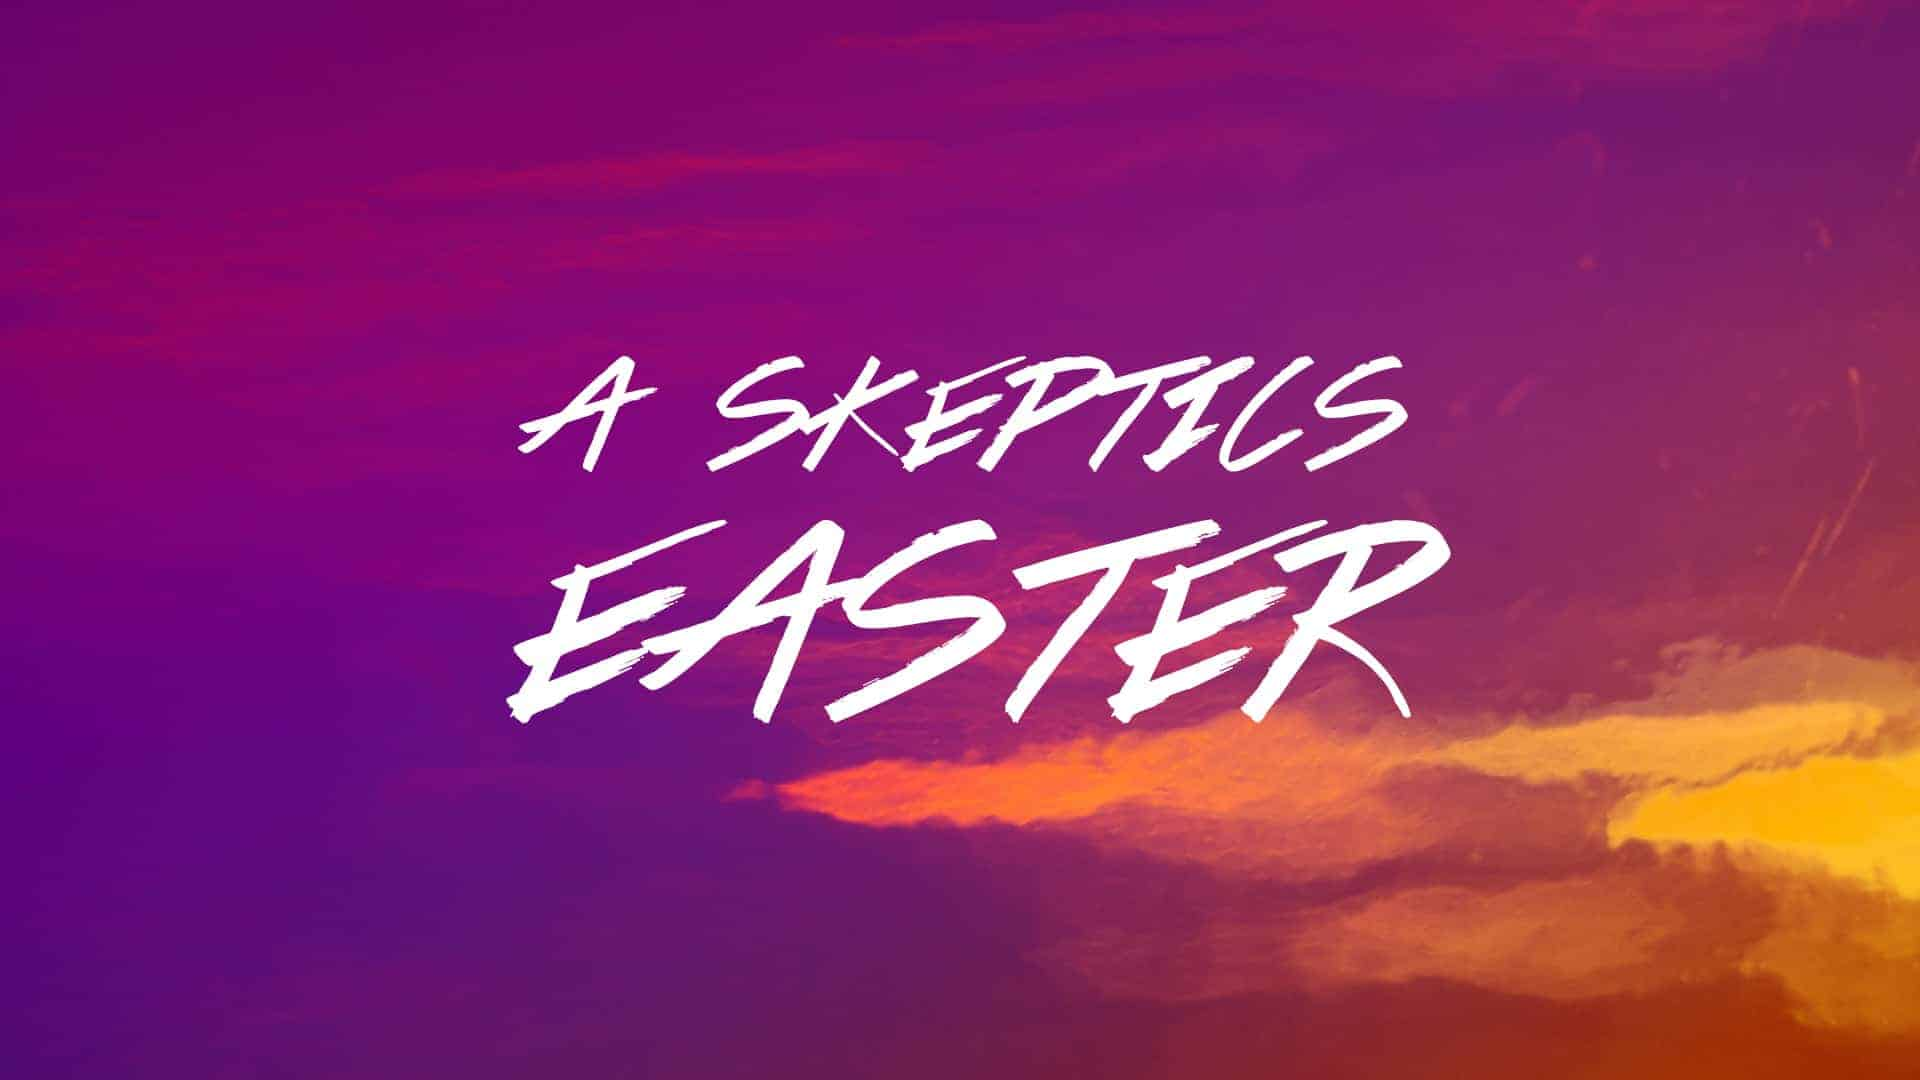 A Skeptic's Easter